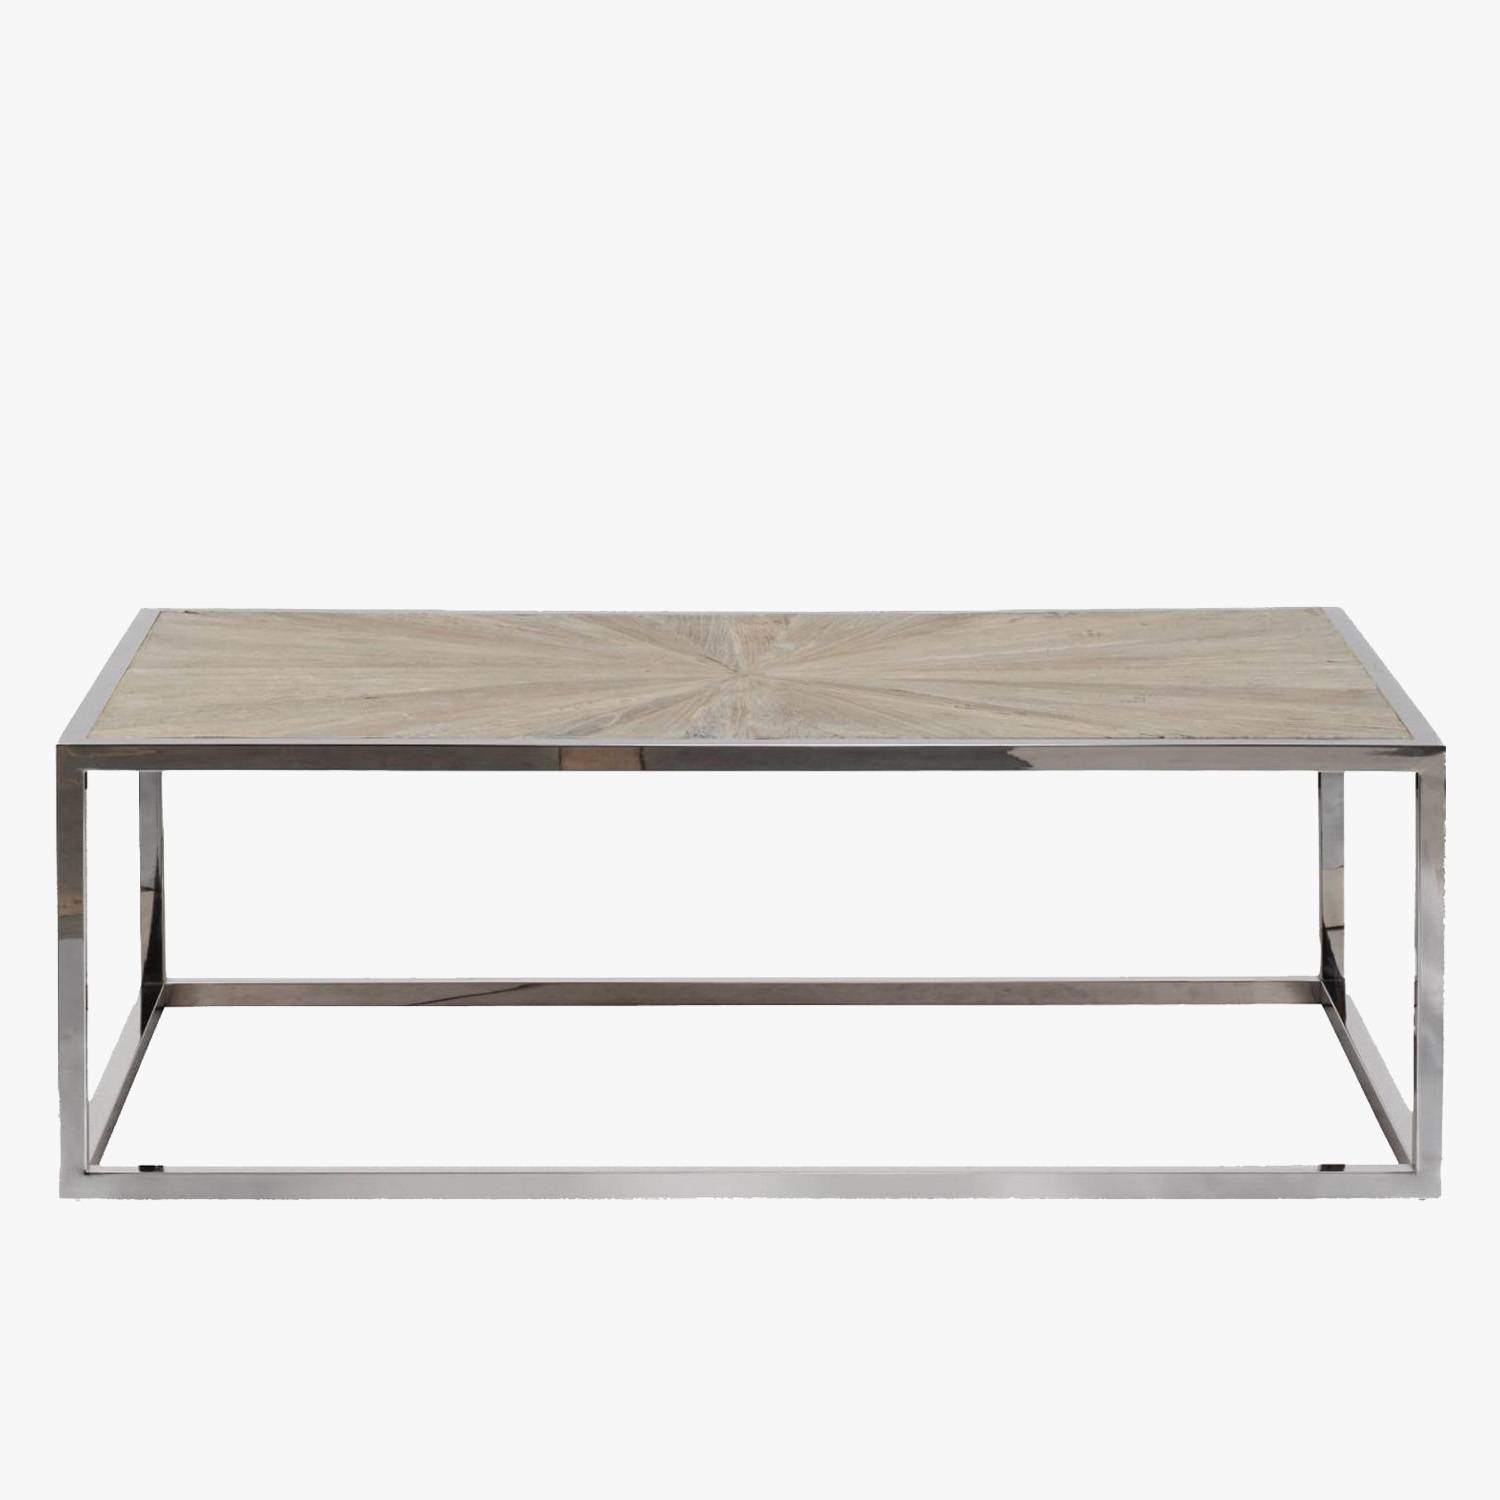 Parquet Top Chrome Coffee Table - Dear Keaton pertaining to Chrome Coffee Tables (Image 22 of 30)